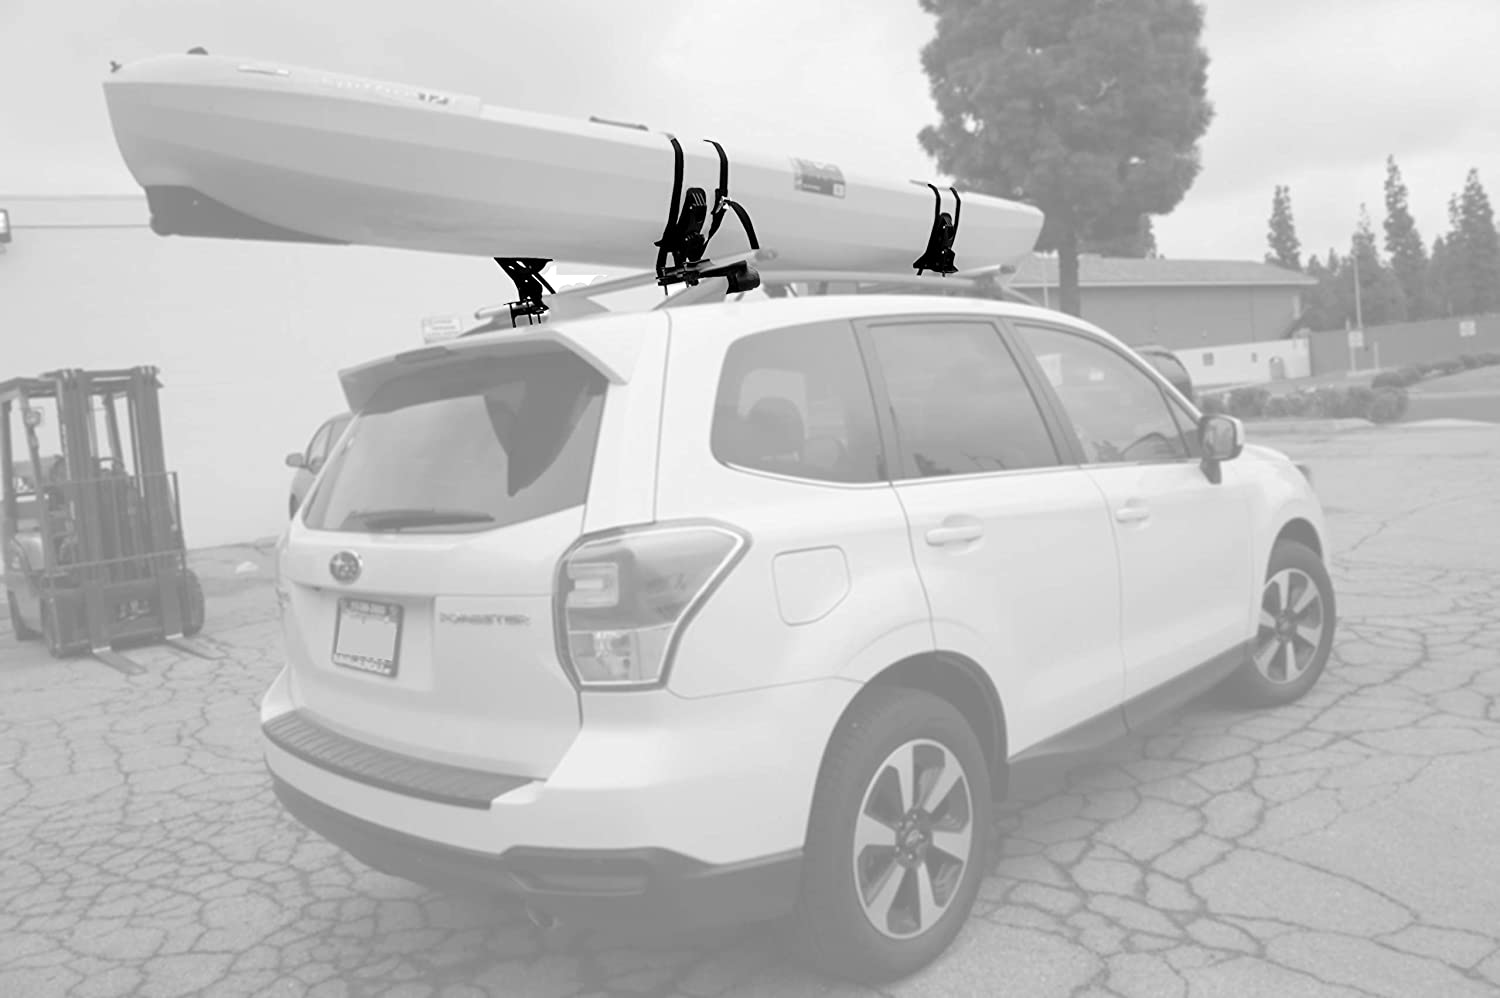 Car and Truck Surfboard and Ski Board Rooftop Mount on SUV Kayaks SUP DrSportsUSA Universal Foldable 2 Pairs J-Bar Kayak Rack Folding Car Roof Top Carrier for Canoe